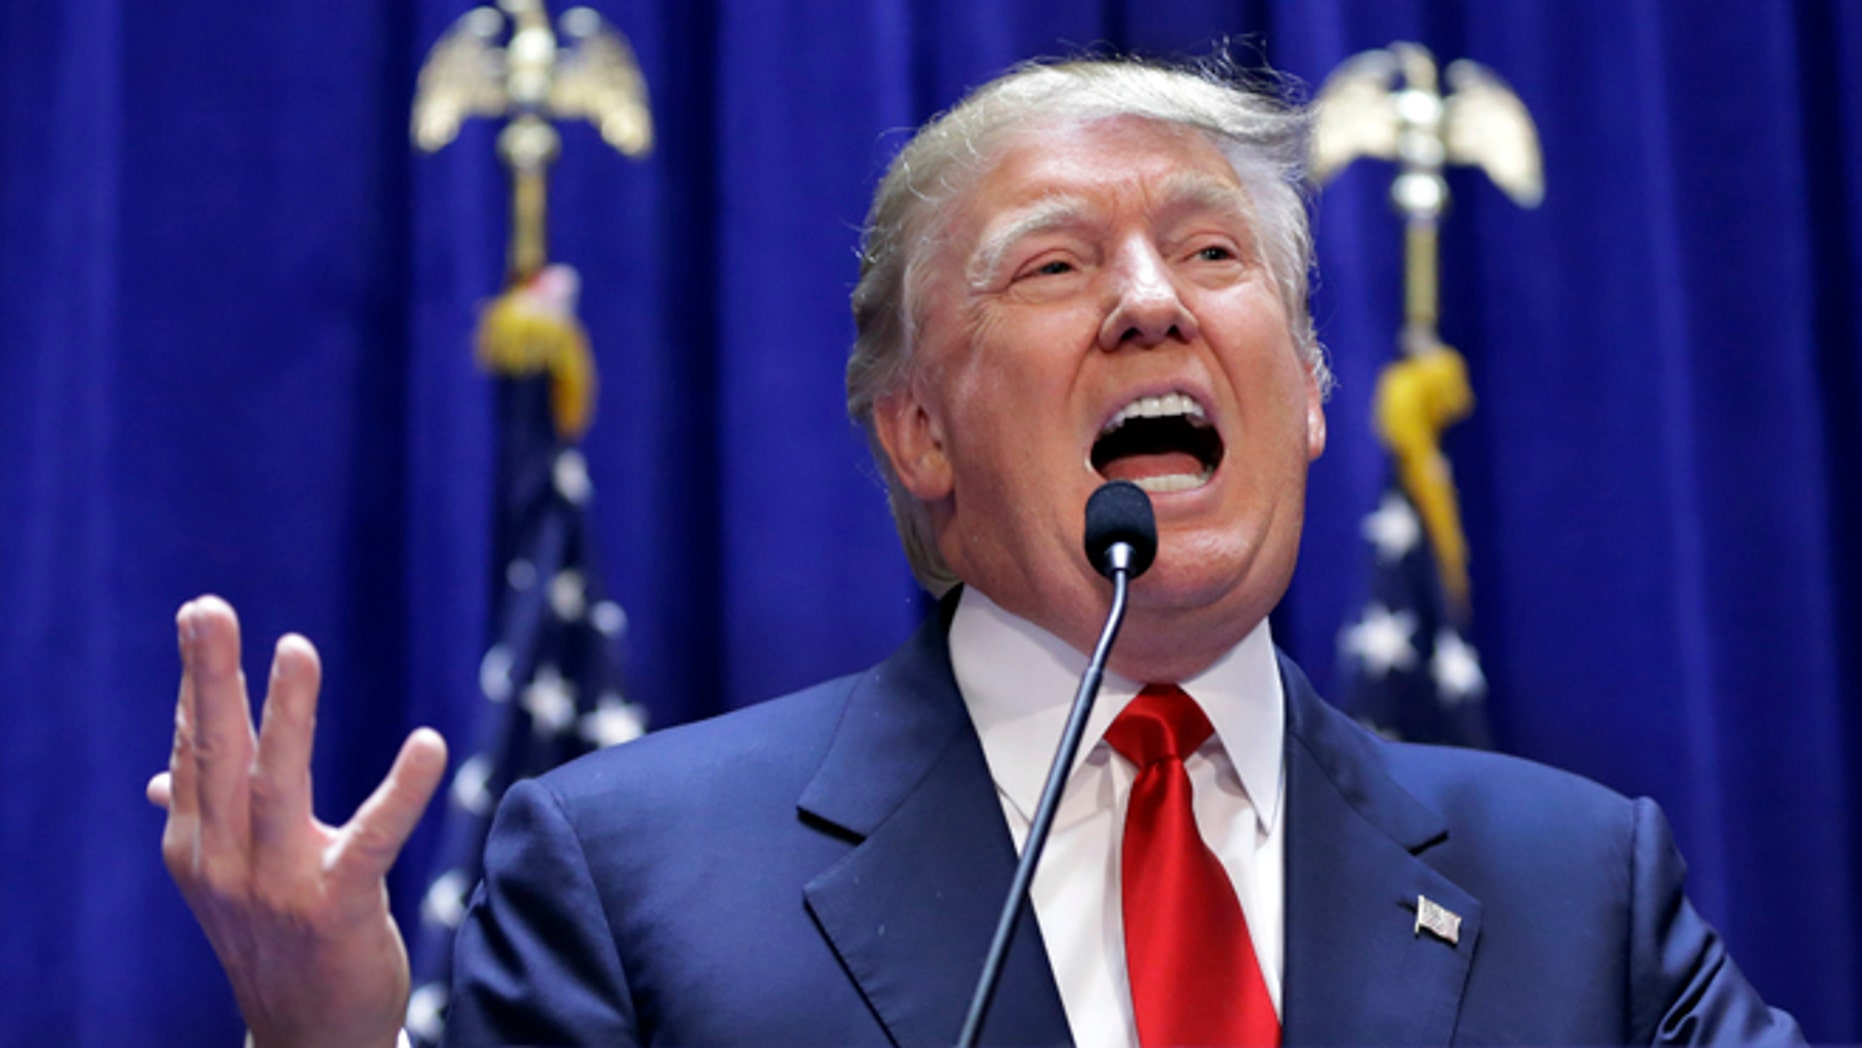 """FILE - This June 16, 2015 file photo shows developer Donald Trump as he delivers remarks during his announcement that he will be a Republican candidate for president, in New York. Univision is dropping the Miss USA pageant and says it will cut all business ties with Donald Trump in a spiraling controversy over comments the Republican presidential hopeful made recently about Mexican immigrants. The company said Thursday, June 25, it would pull the plug on its Spanish-language coverage of the pageant on July 12 by its UniMas network. It also has severed its business relationship with the Miss Universe Organization, which produces the Miss USA pageant, due to what it called """"insulting remarks about Mexican immigrants"""" by Trump, a part owner of the organization. (AP Photo/Richard Drew, File)"""